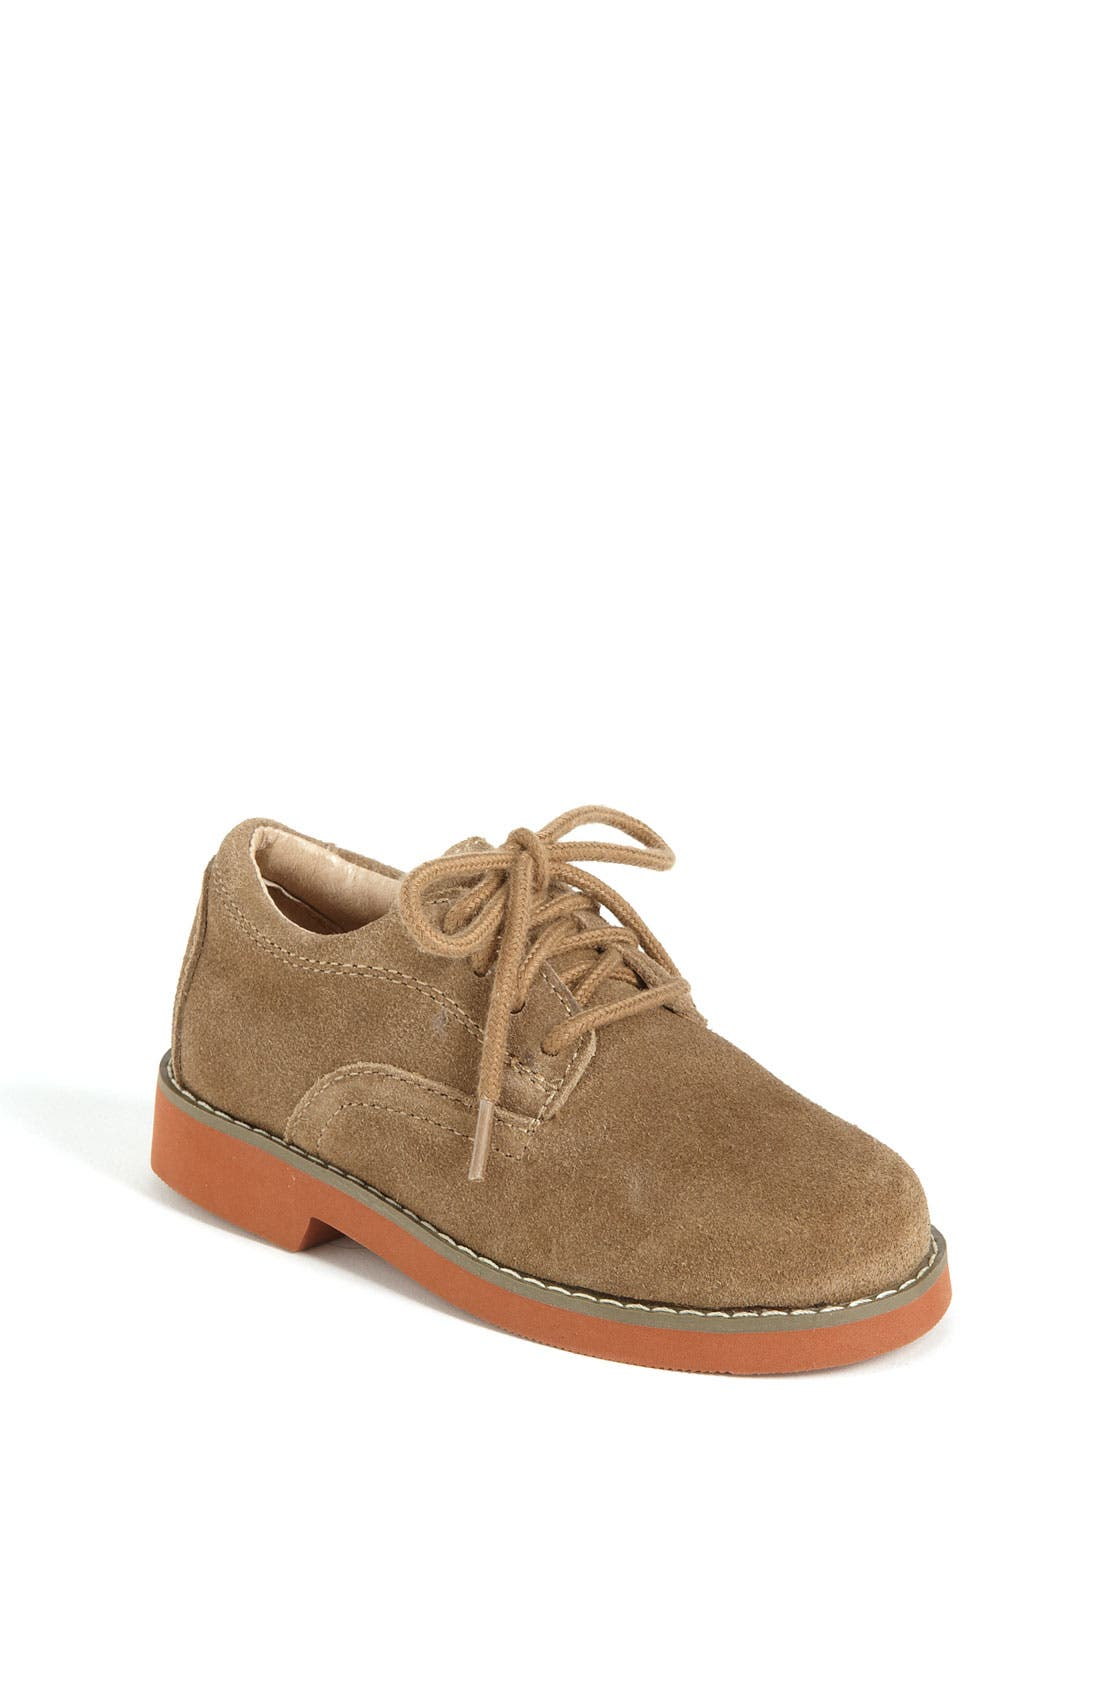 Alternate Image 1 Selected - Jumping Jacks 'Buck' Oxford Shoe (Toddler, Little Kid & Big Kid)